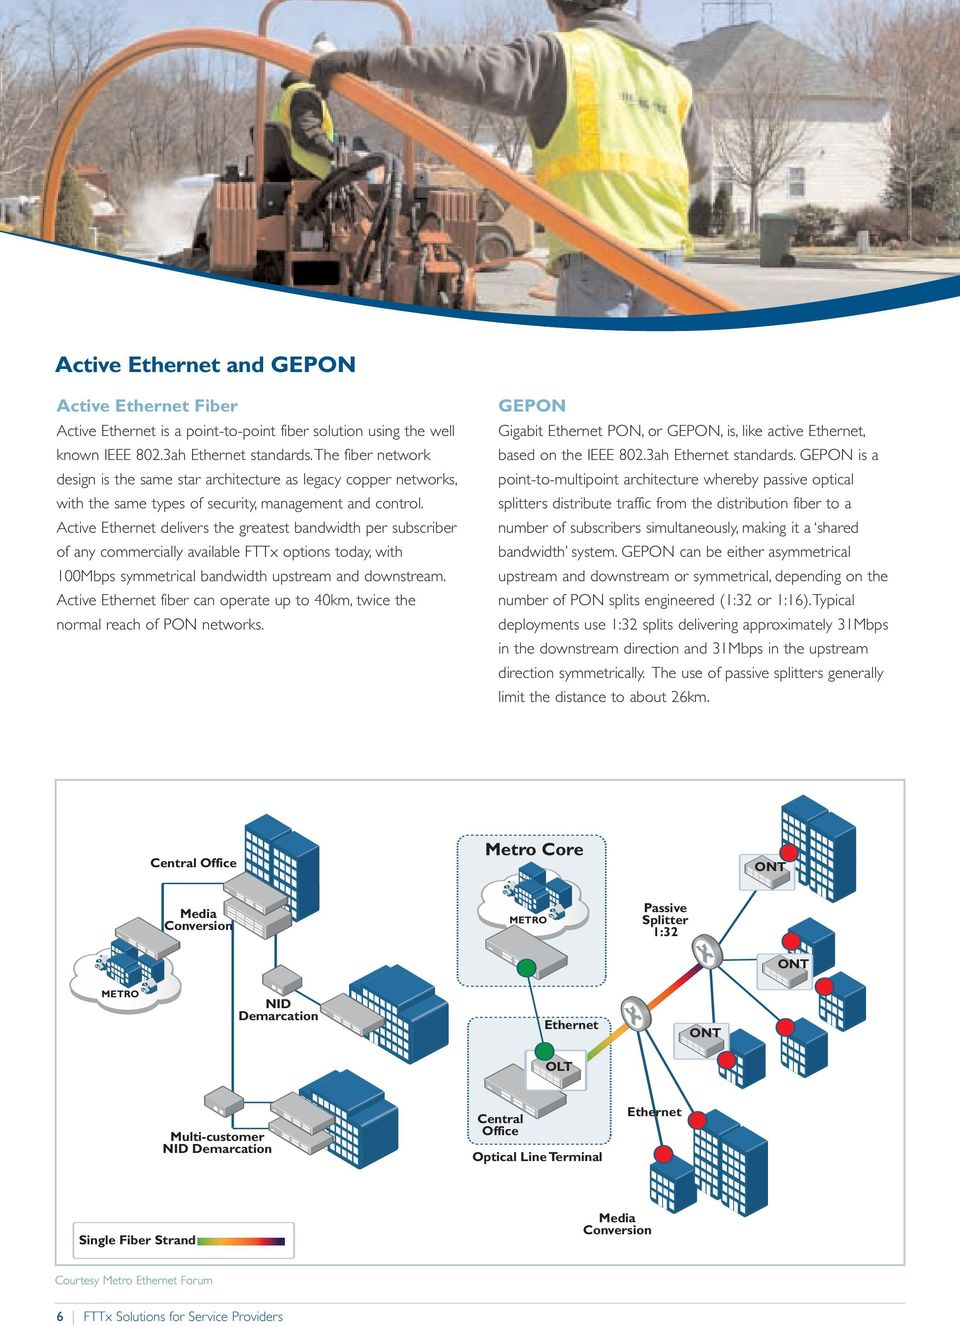 Active Ethernet delivers the greatest bandwidth per subscriber of any commercially available FTTx options today, with 100Mbps symmetrical bandwidth upstream and downstream.